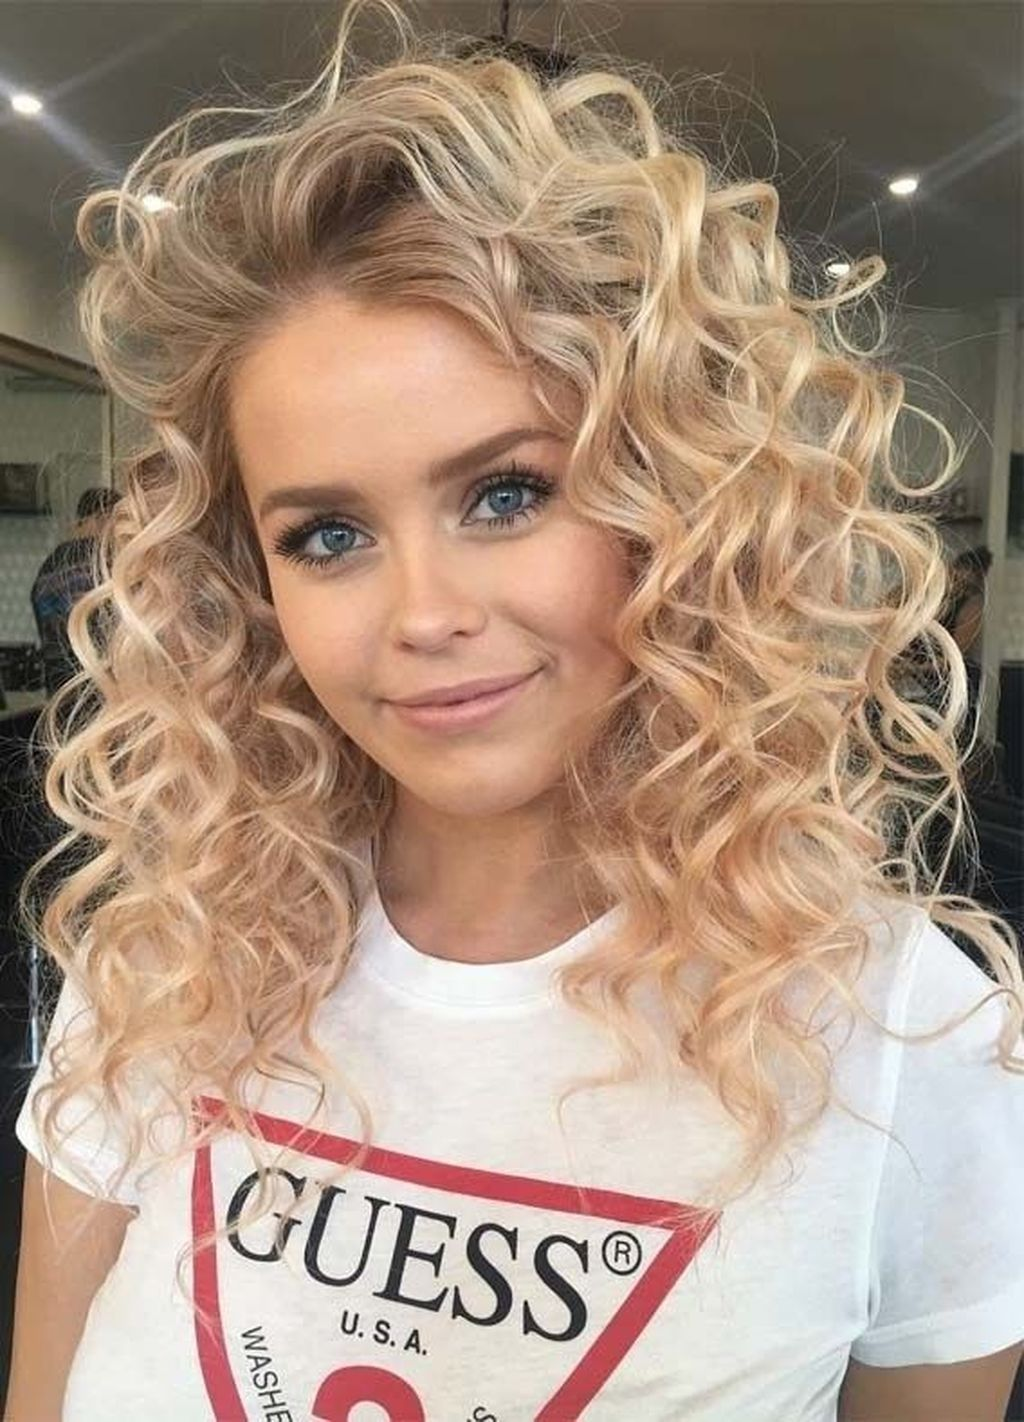 47 Inspiring Curly Hairstyles Ideas For Teenage Women This Year Cute Curly Hairstyles Medium Hair Styles Hair Styles